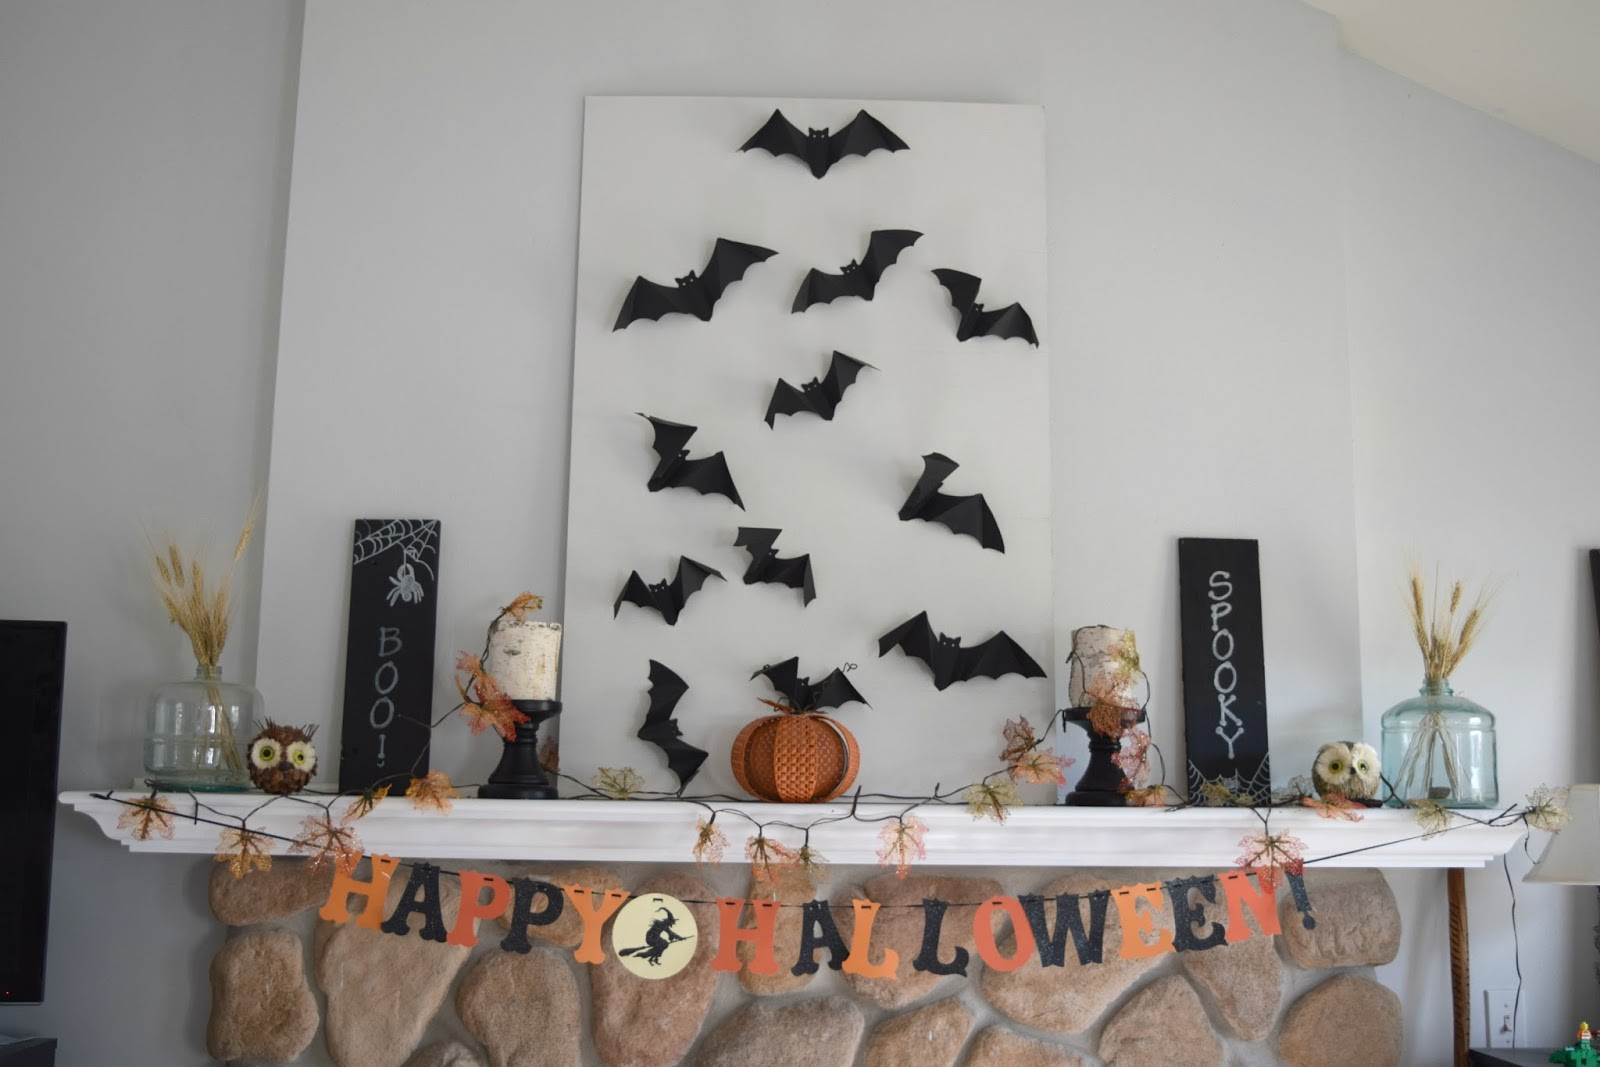 16 of the best Fall and Halloween blogger home tours